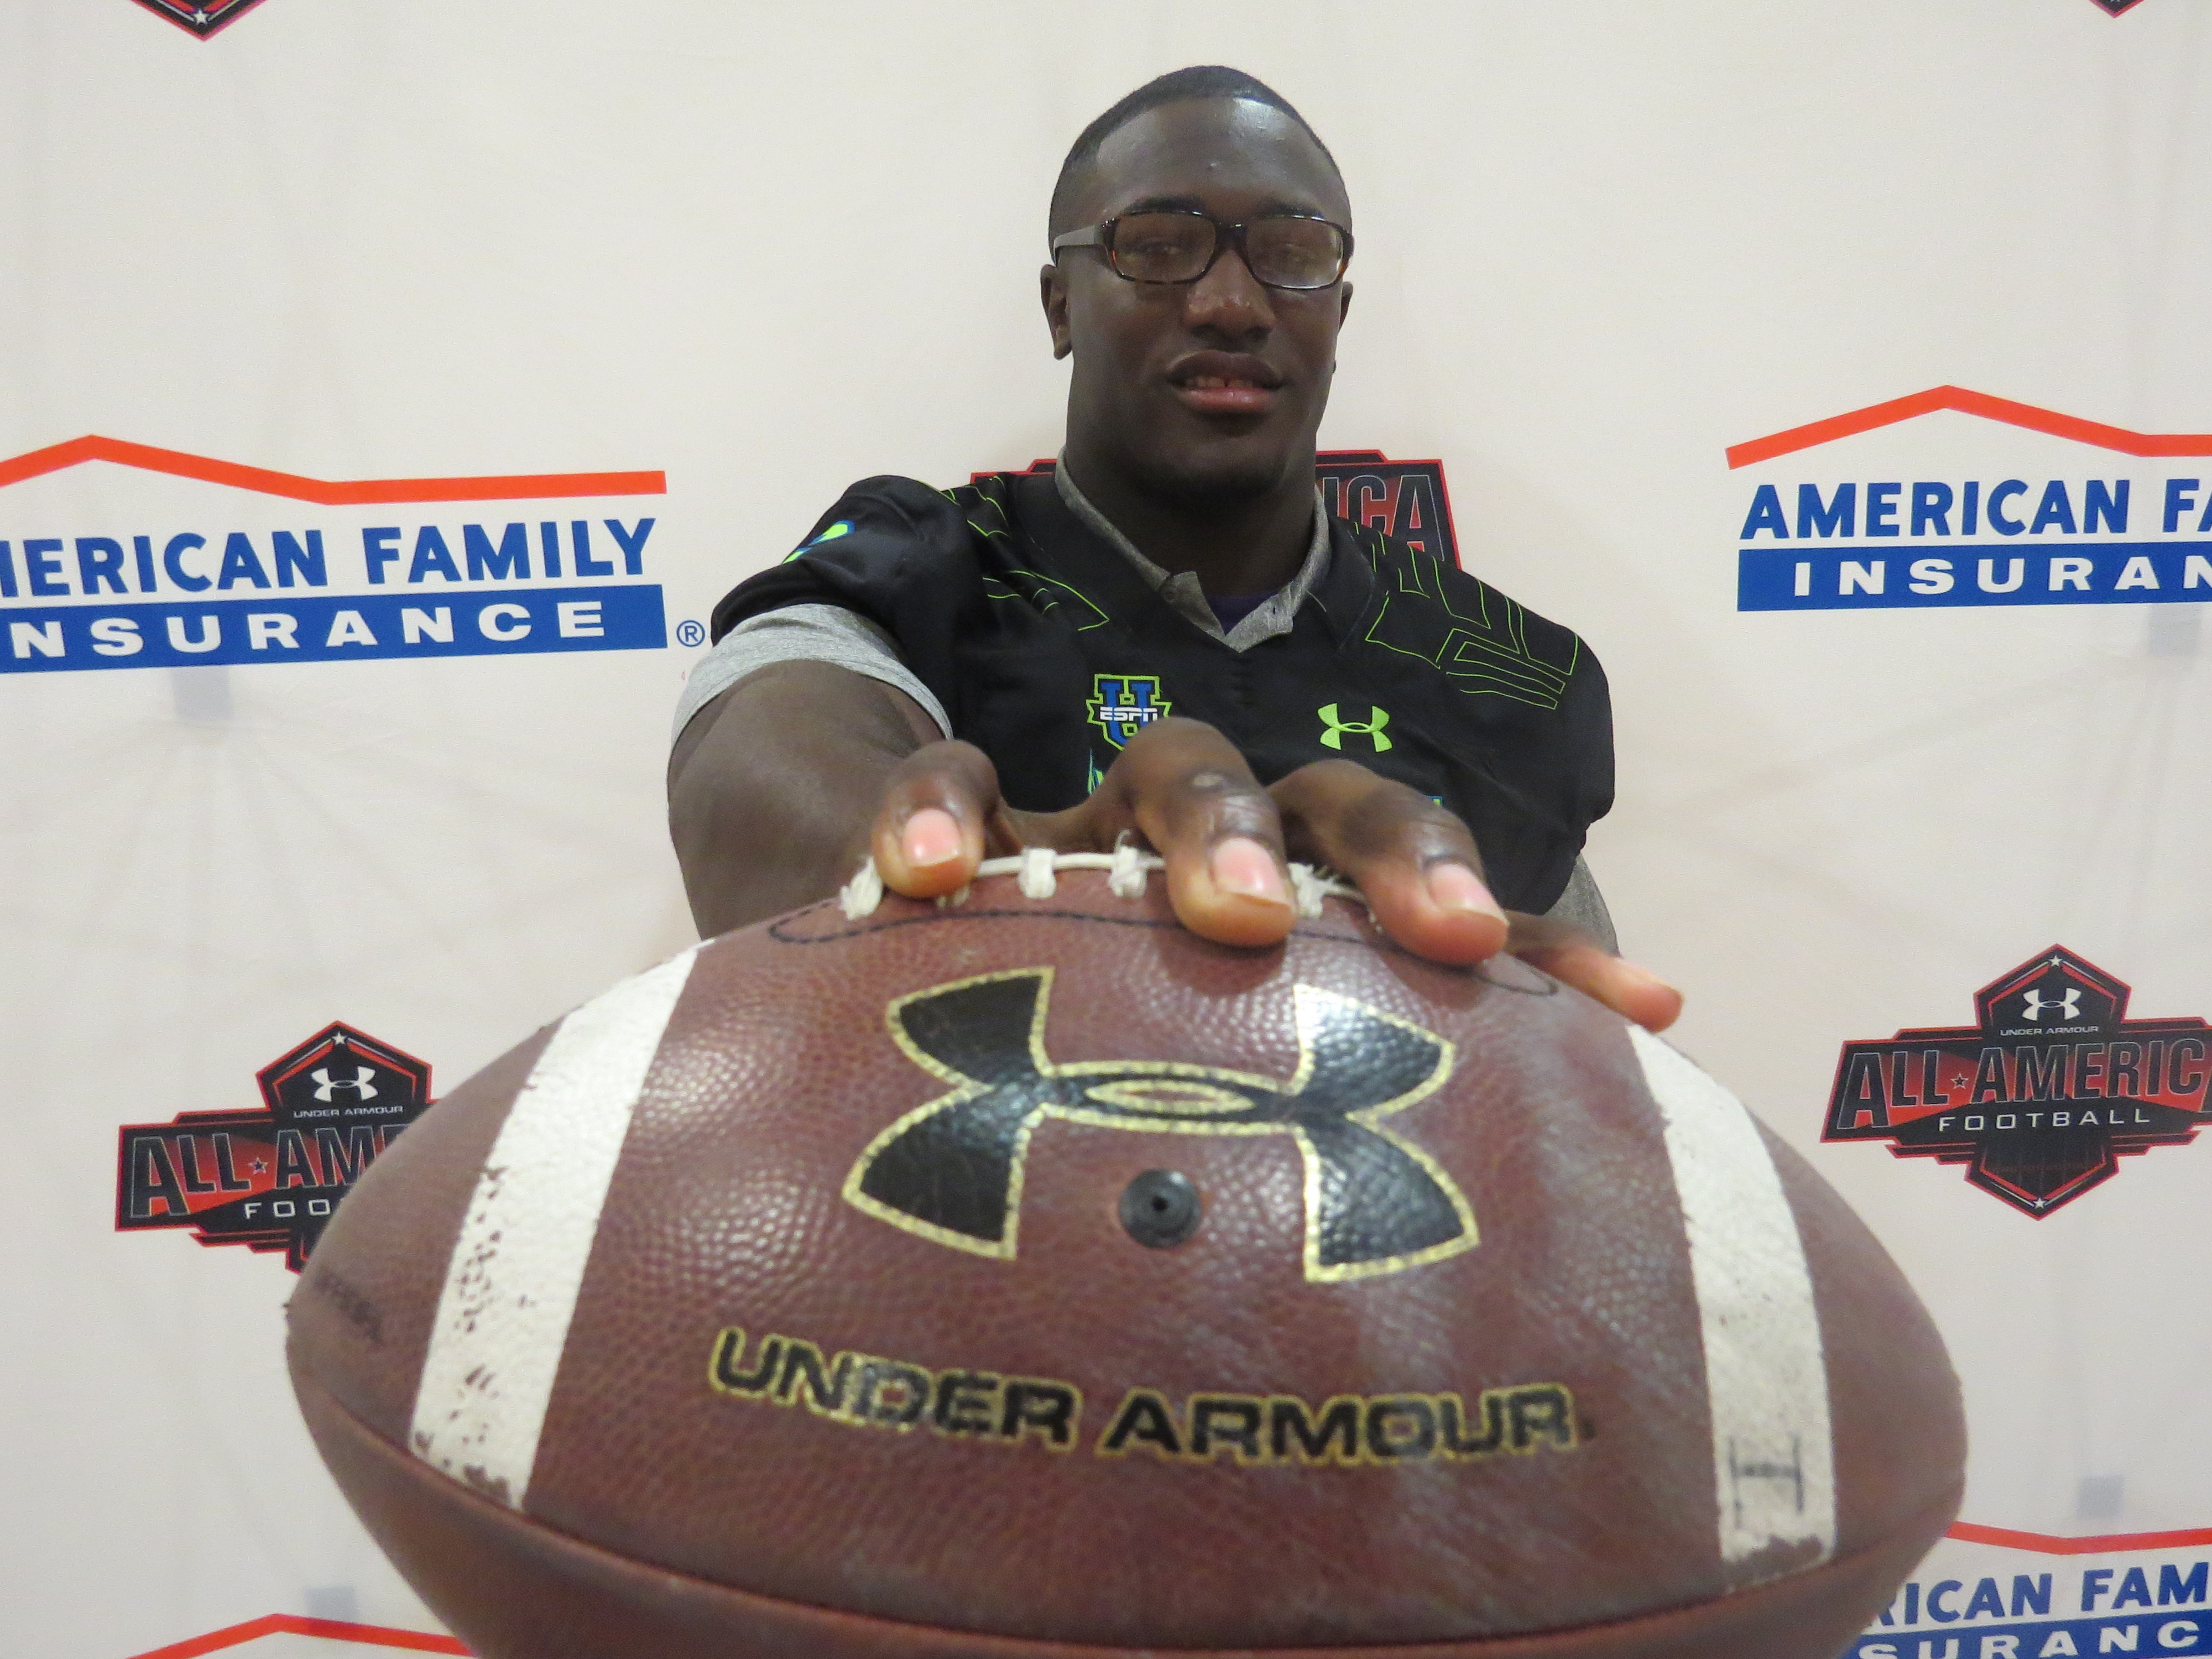 Devin White poses after accepting his Under Armour All-America jersey (Photo: Intersport)